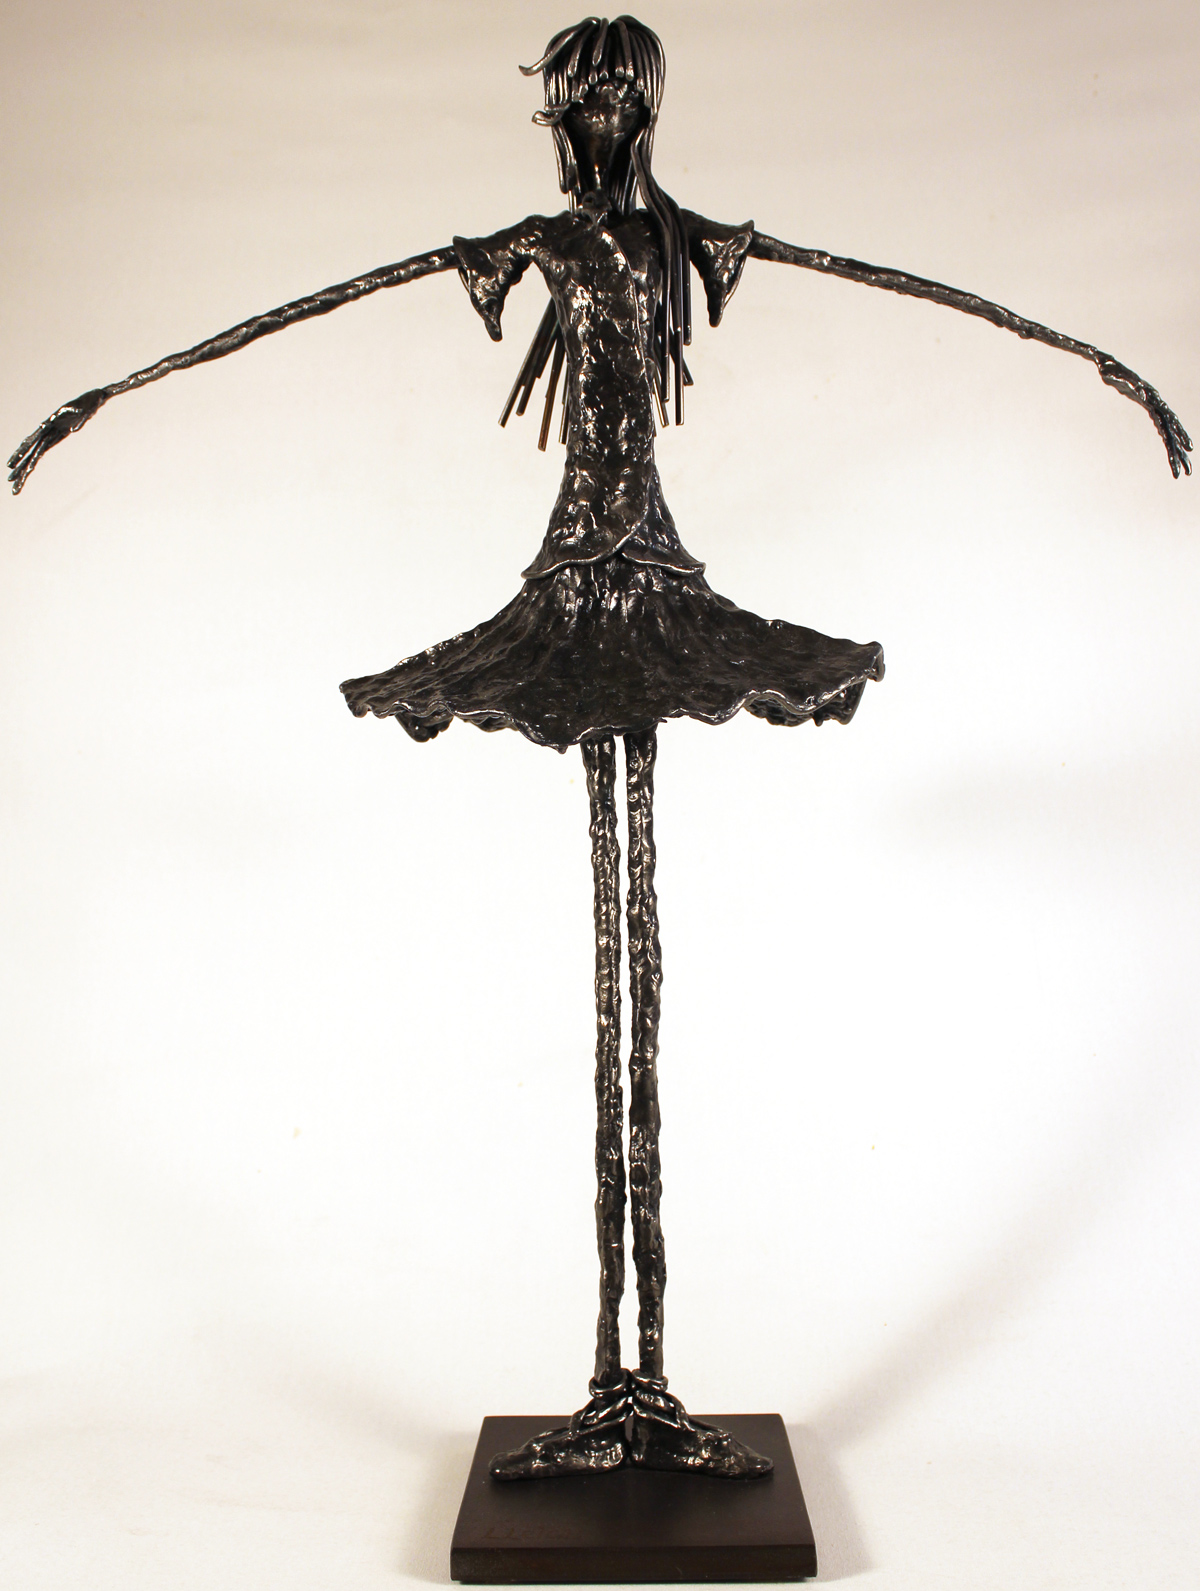 Leon Leigh, Steel Sculpture, Untitled, click to enlarge